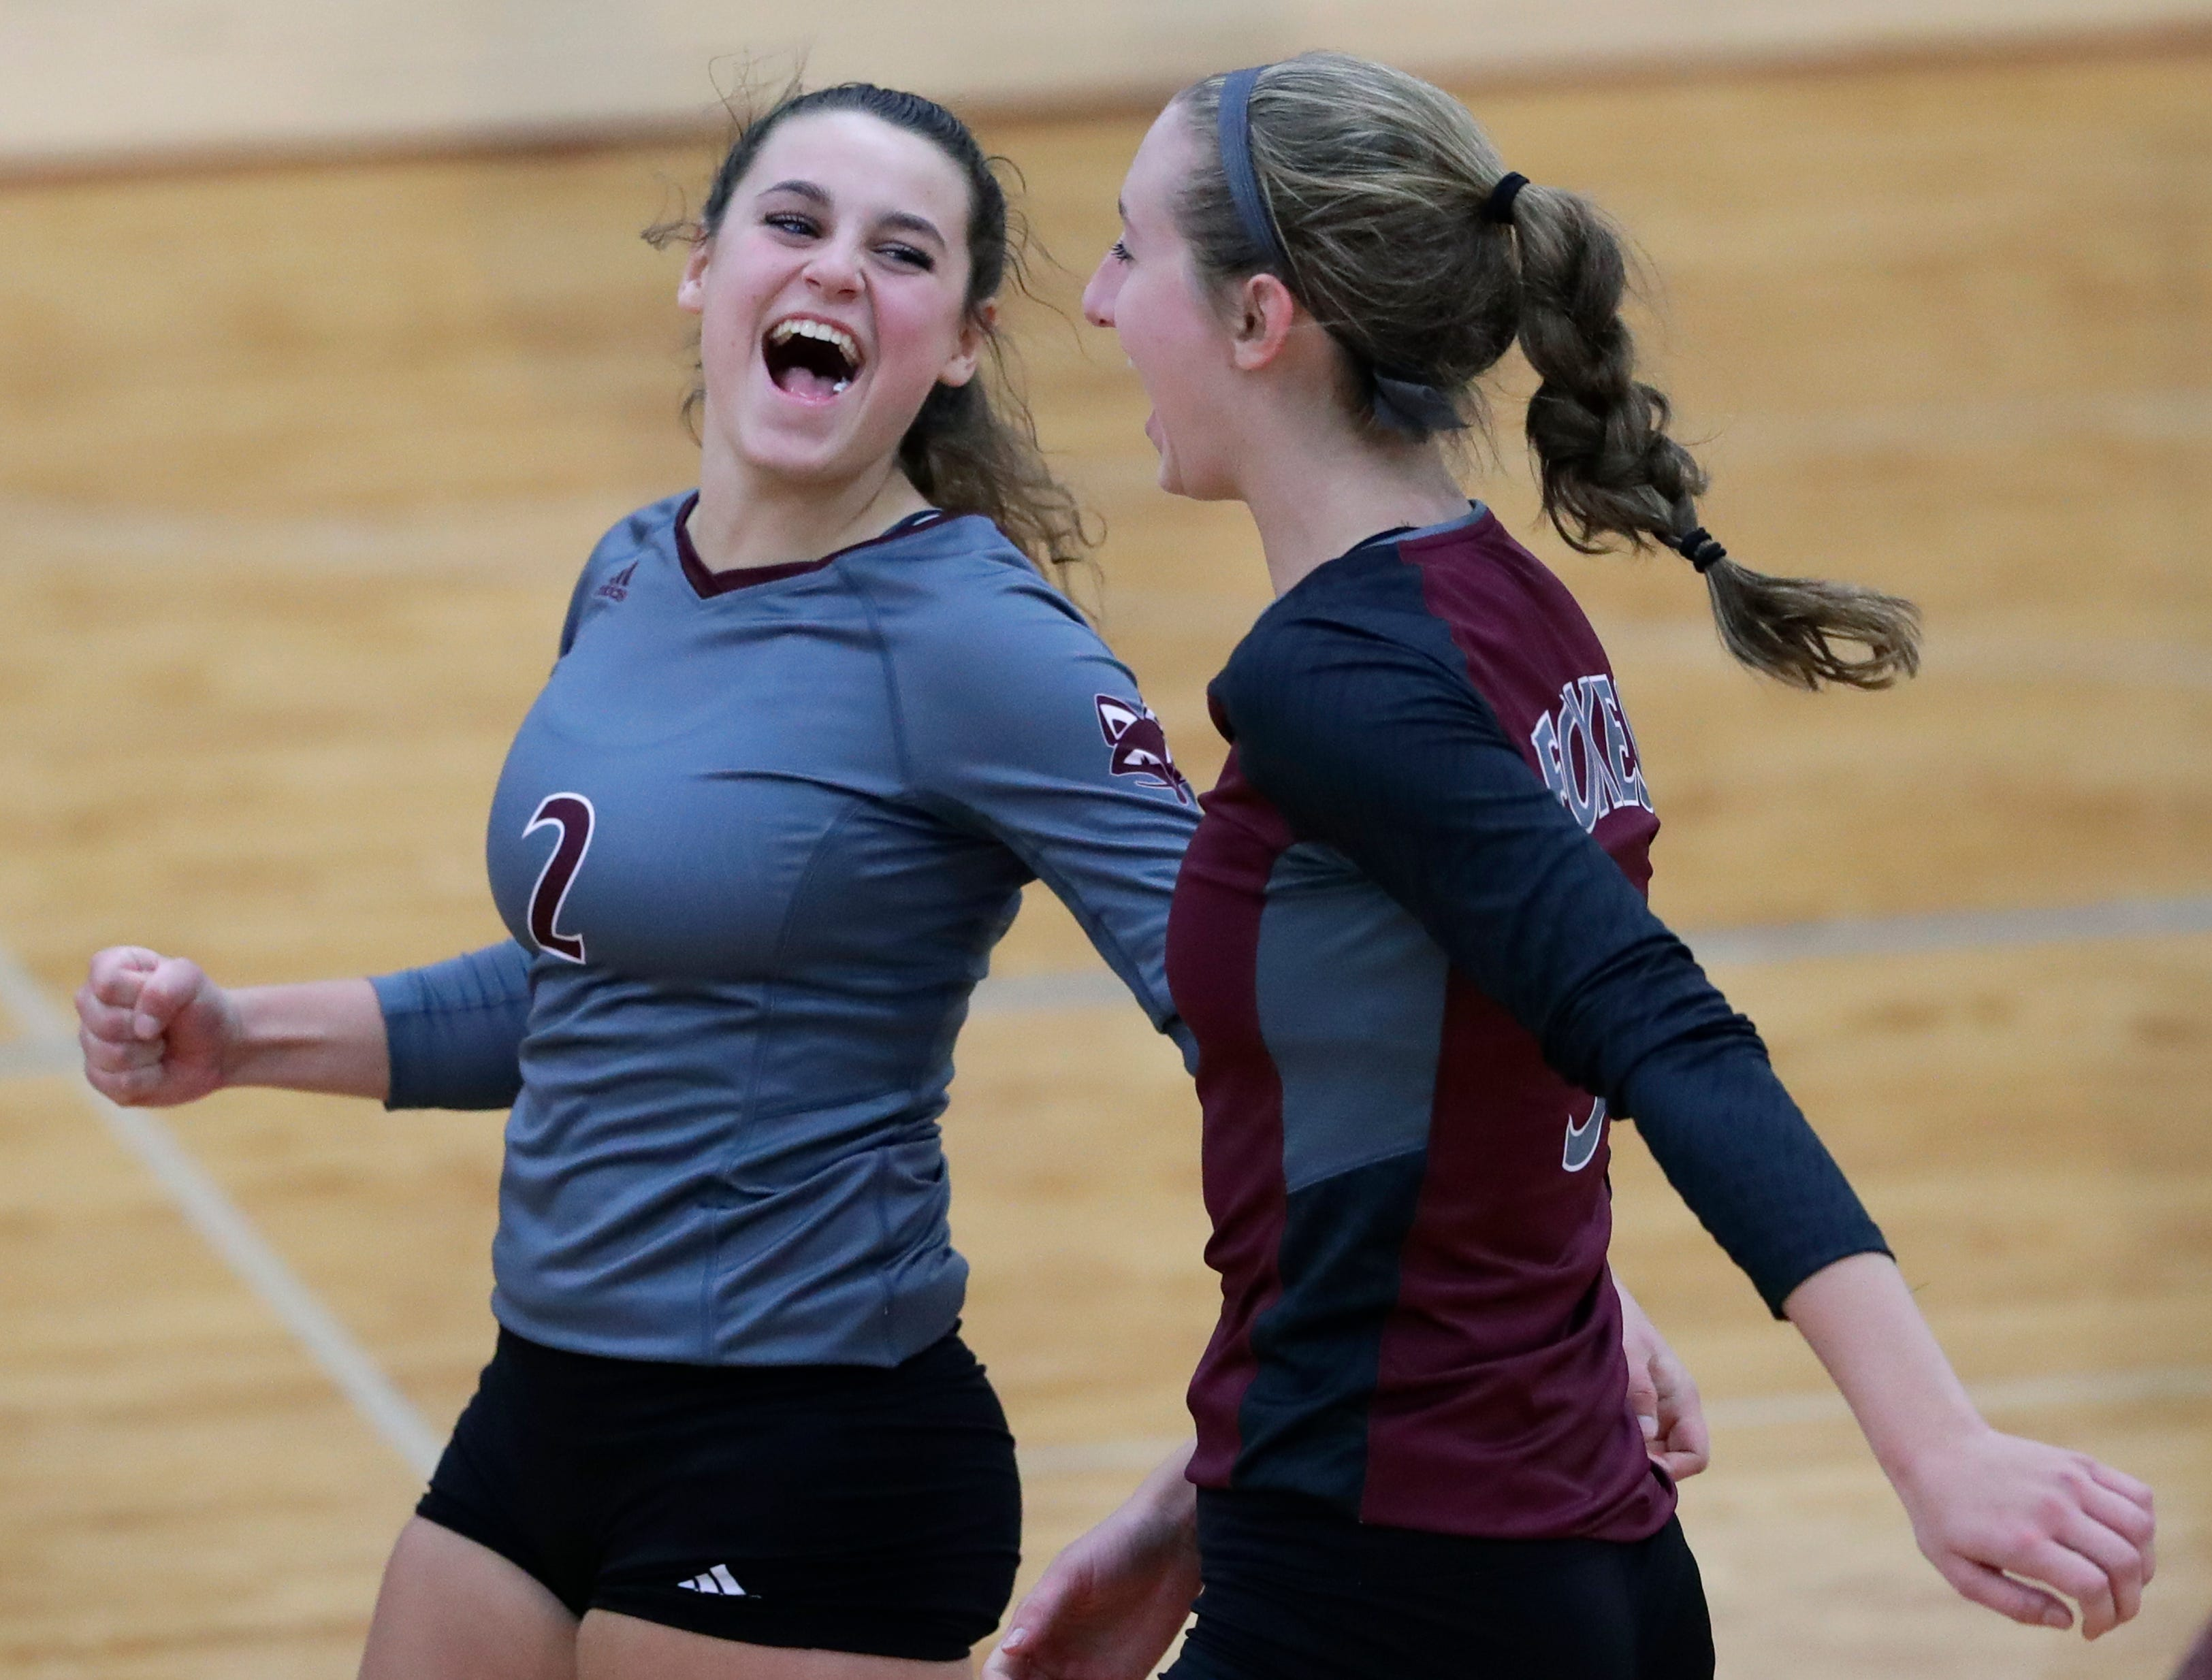 Fox Valley Lutheran High School's Lilly Scheffler (2) and Jenna Charron (3) celebrate winning a point against Omro High School during their girls volleyball match Tuesday, Oct. 16, 2018, in Appleton, Wis. 